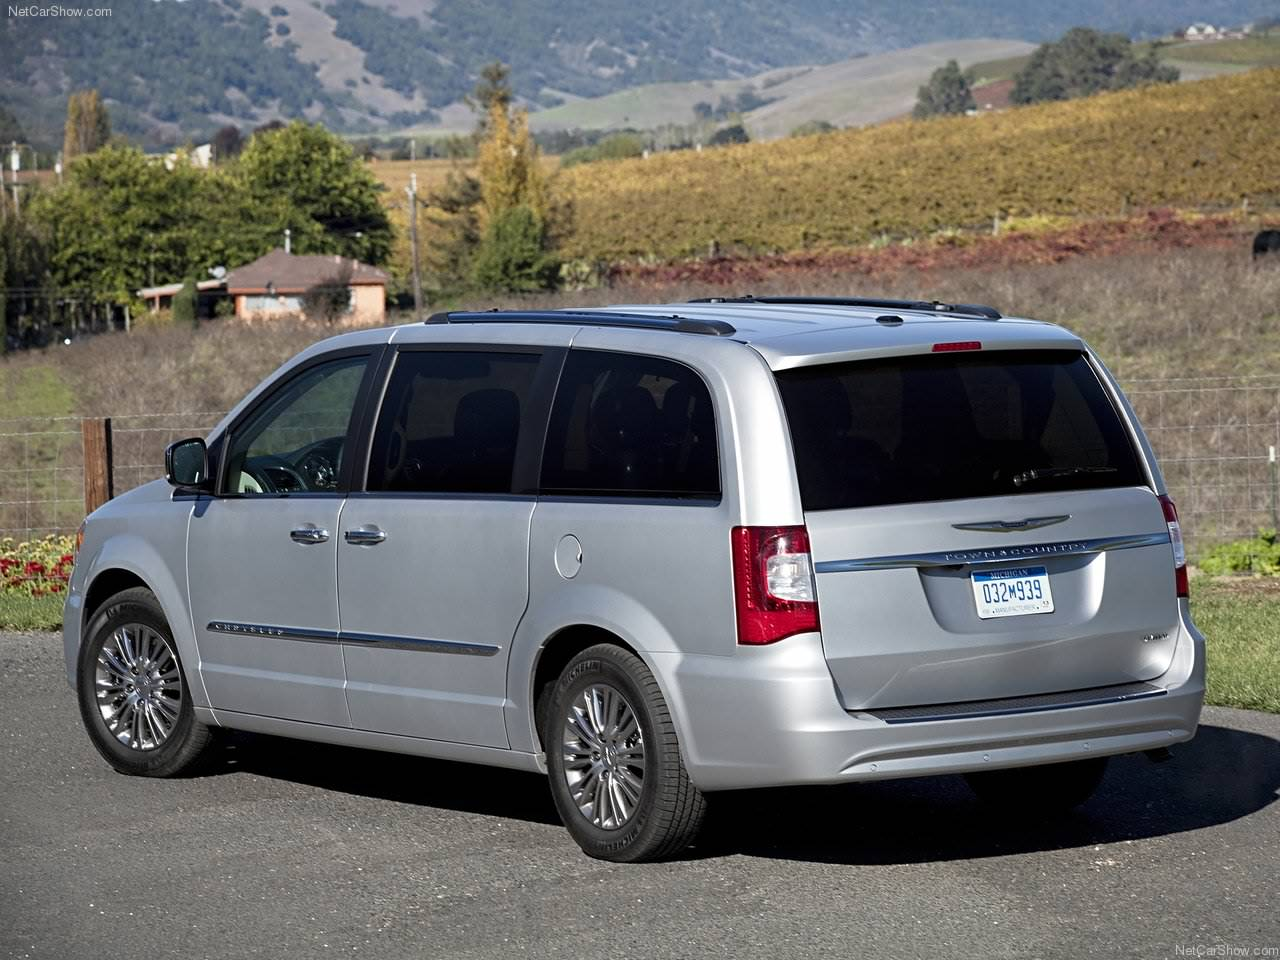 2011 chrysler town and country chrysler autos spain. Black Bedroom Furniture Sets. Home Design Ideas